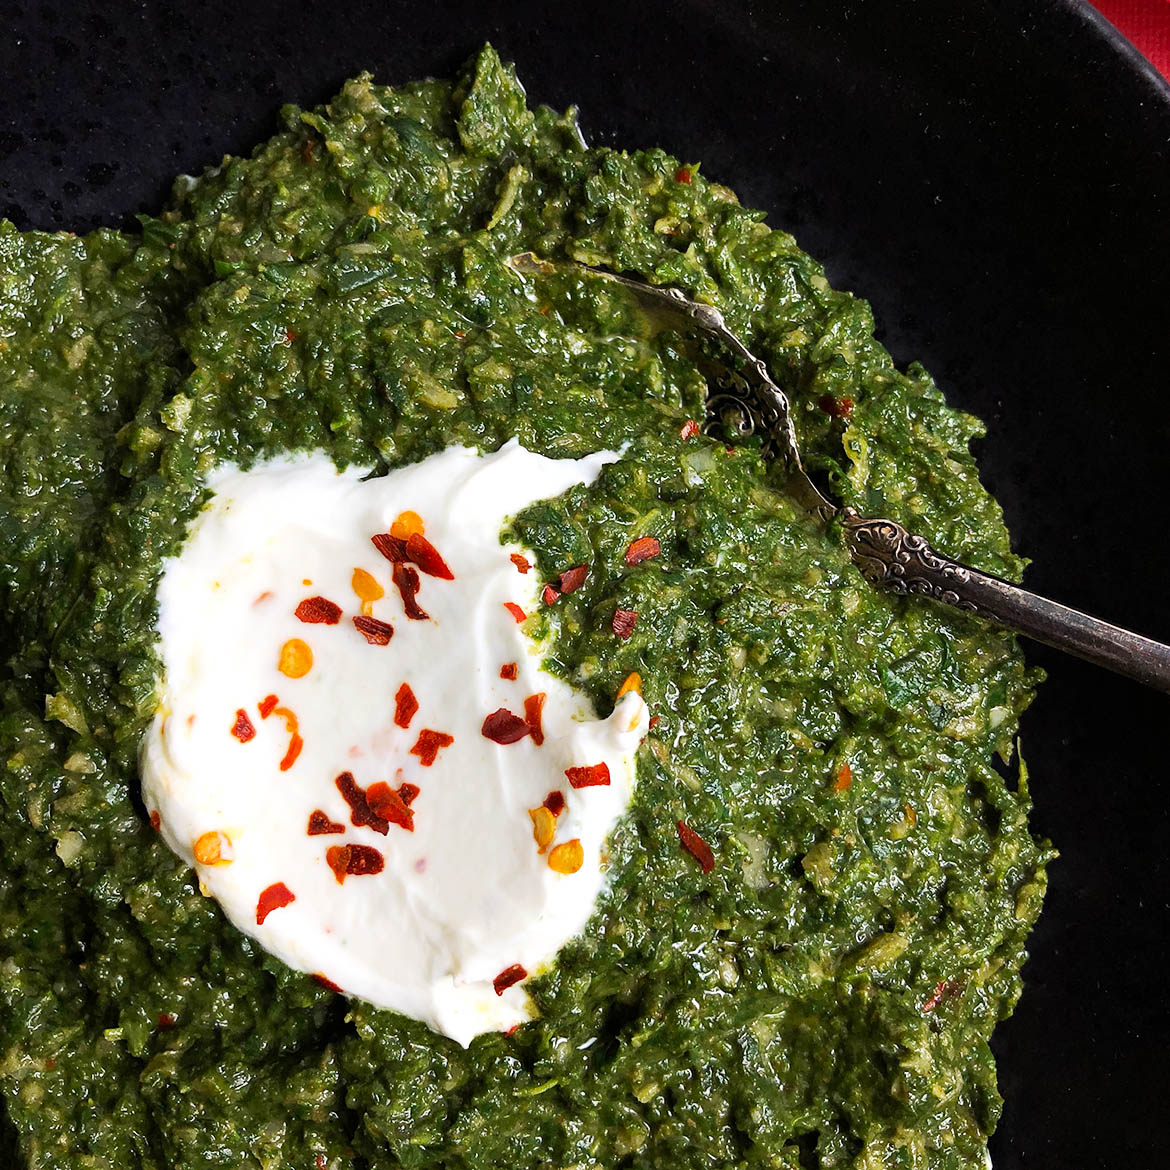 """A graphic titled """"Making Indian-Spiced Spinach (Saag): A Visual Guide. Displays the text """"Cook Spinach and set aside"""", next to an image of cooked spinach. Displays photograph of onions, ginger, and garlic in a frying pan, with text: Fry onions, ginger, and garlic. An image of the frying pan with a heap of dry spices on top of the previous ingredients. Text reads: Add spices and fry for 15 familycuisine.netlays photograph of yogurt and spinach on top of other ingredients in frying pan. Text reads: Add spinach and yogurt and heat through. Final image shows an immersion blender in the spinach. Text reads: Blend until desired consistency."""